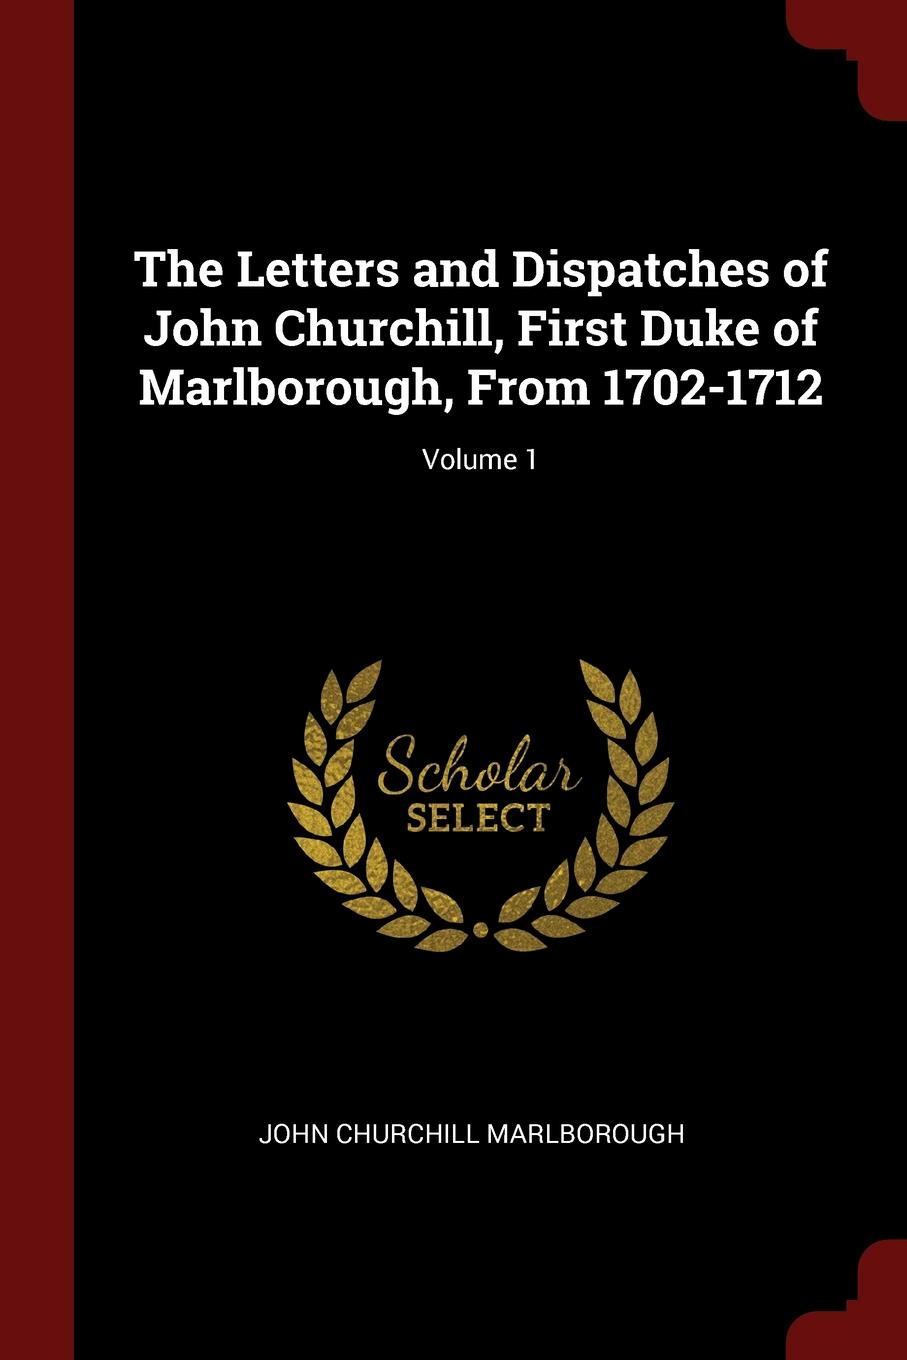 Фото - John Churchill Marlborough The Letters and Dispatches of John Churchill, First Duke of Marlborough, From 1702-1712; Volume 1 john churchill marlborough the letters and dispatches of john churchill first duke of marlborough from 1702 1712 1 v 5